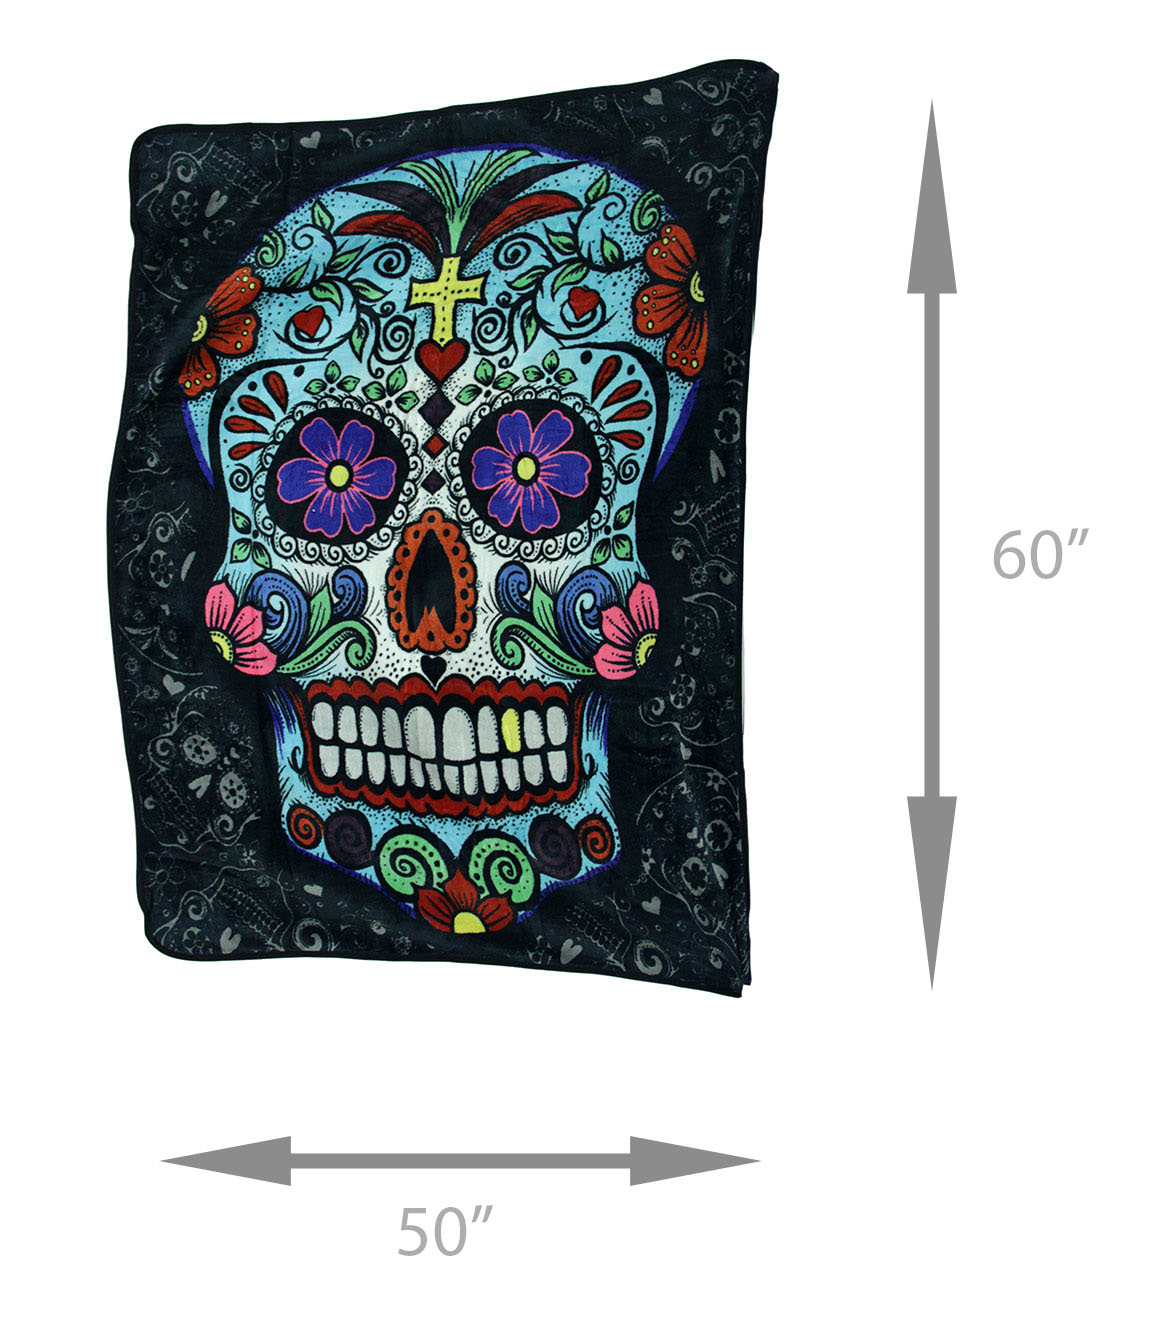 Home Furniture Diy Throws New Day Of The Dead Colorful Sugar Skull Plush Polyester Throw Blanket 50